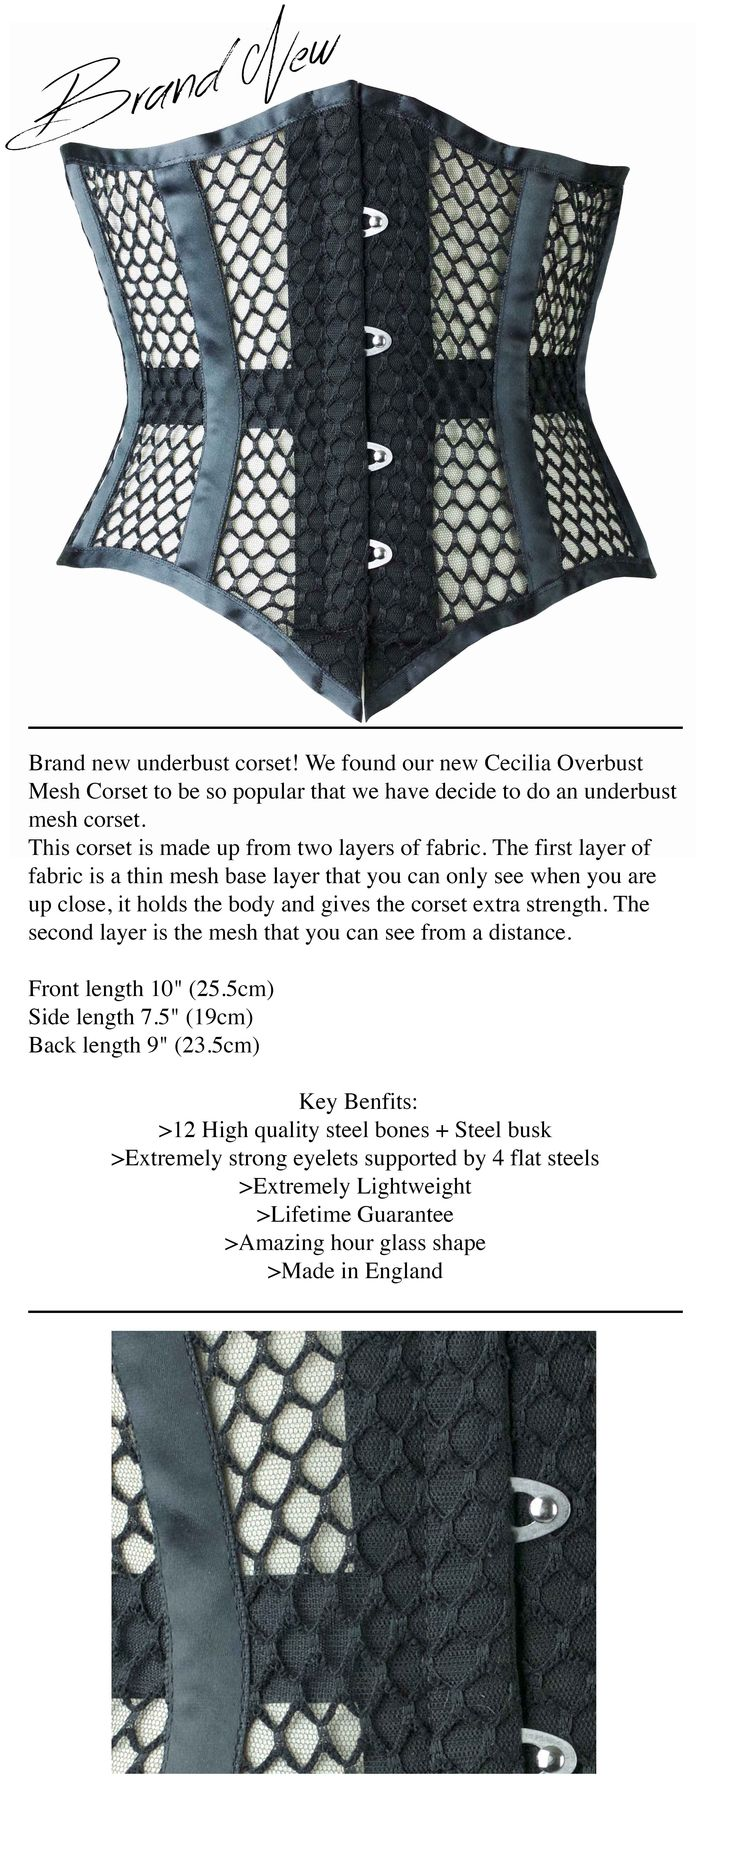 Brand New Underbust Black Mesh Corset #Corsetry #Vollers  http://www.vollers-corsets.com/hannah